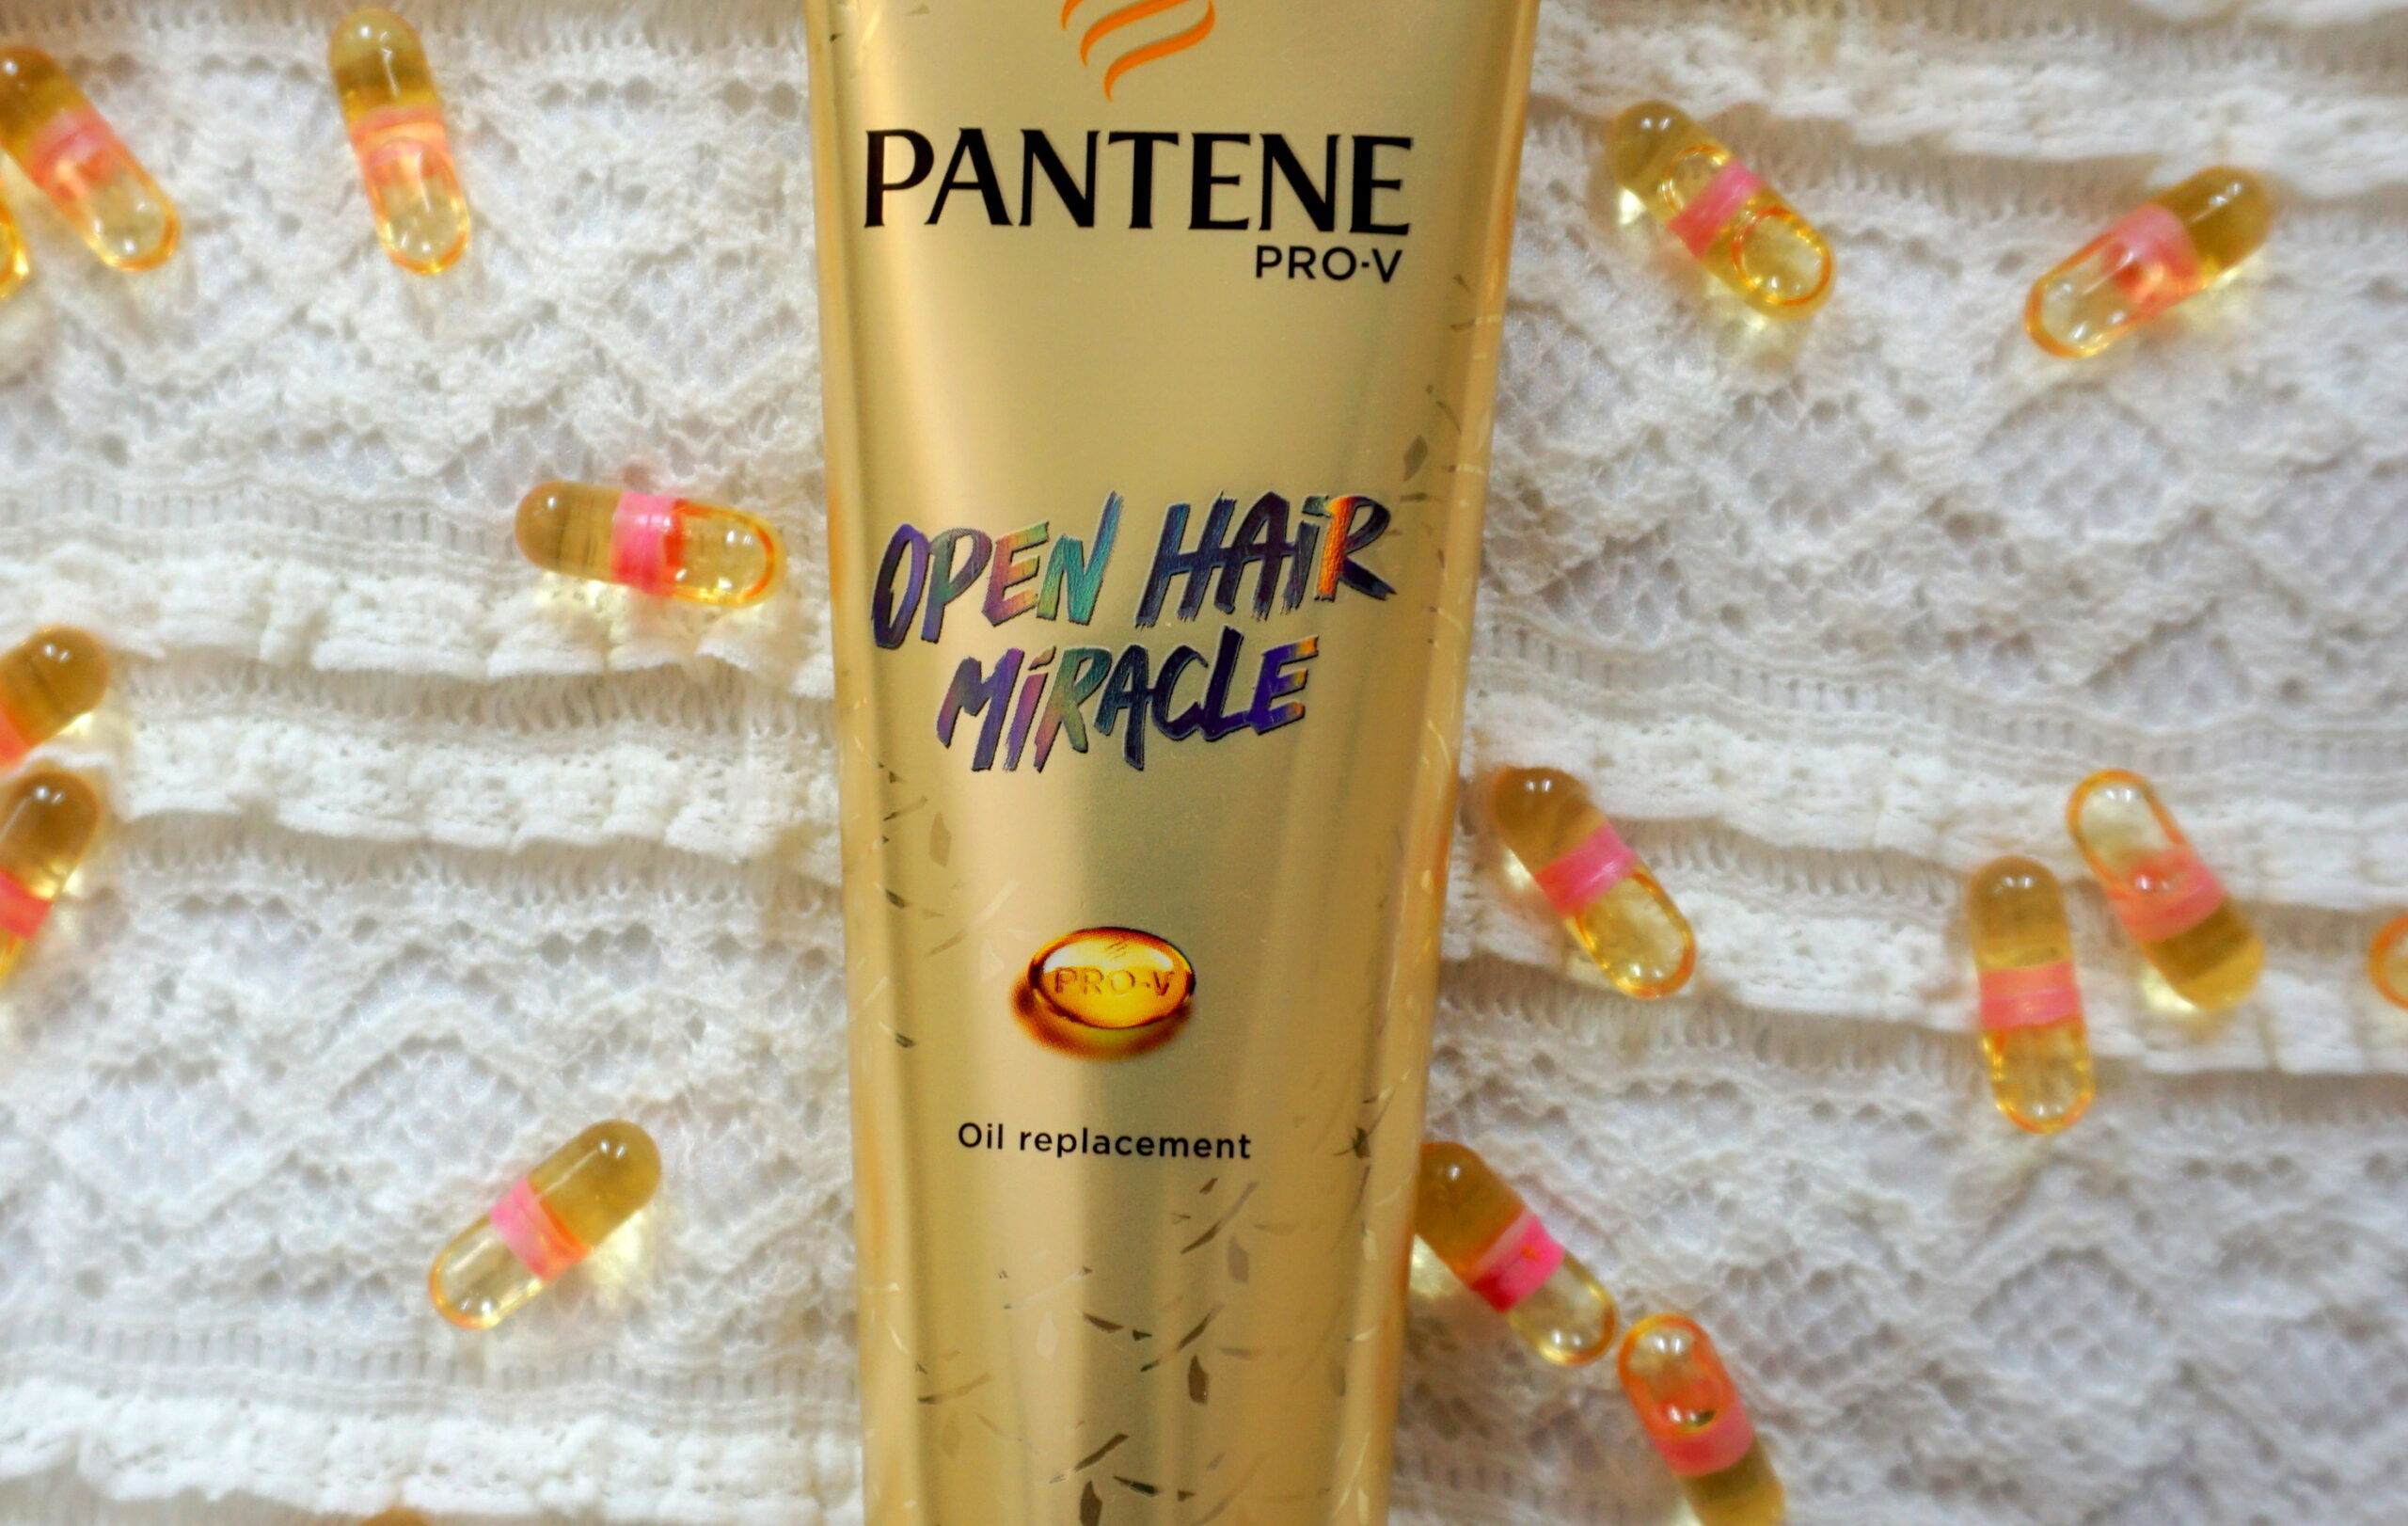 Pantene Open Hair Miracle Oil Replacement Review